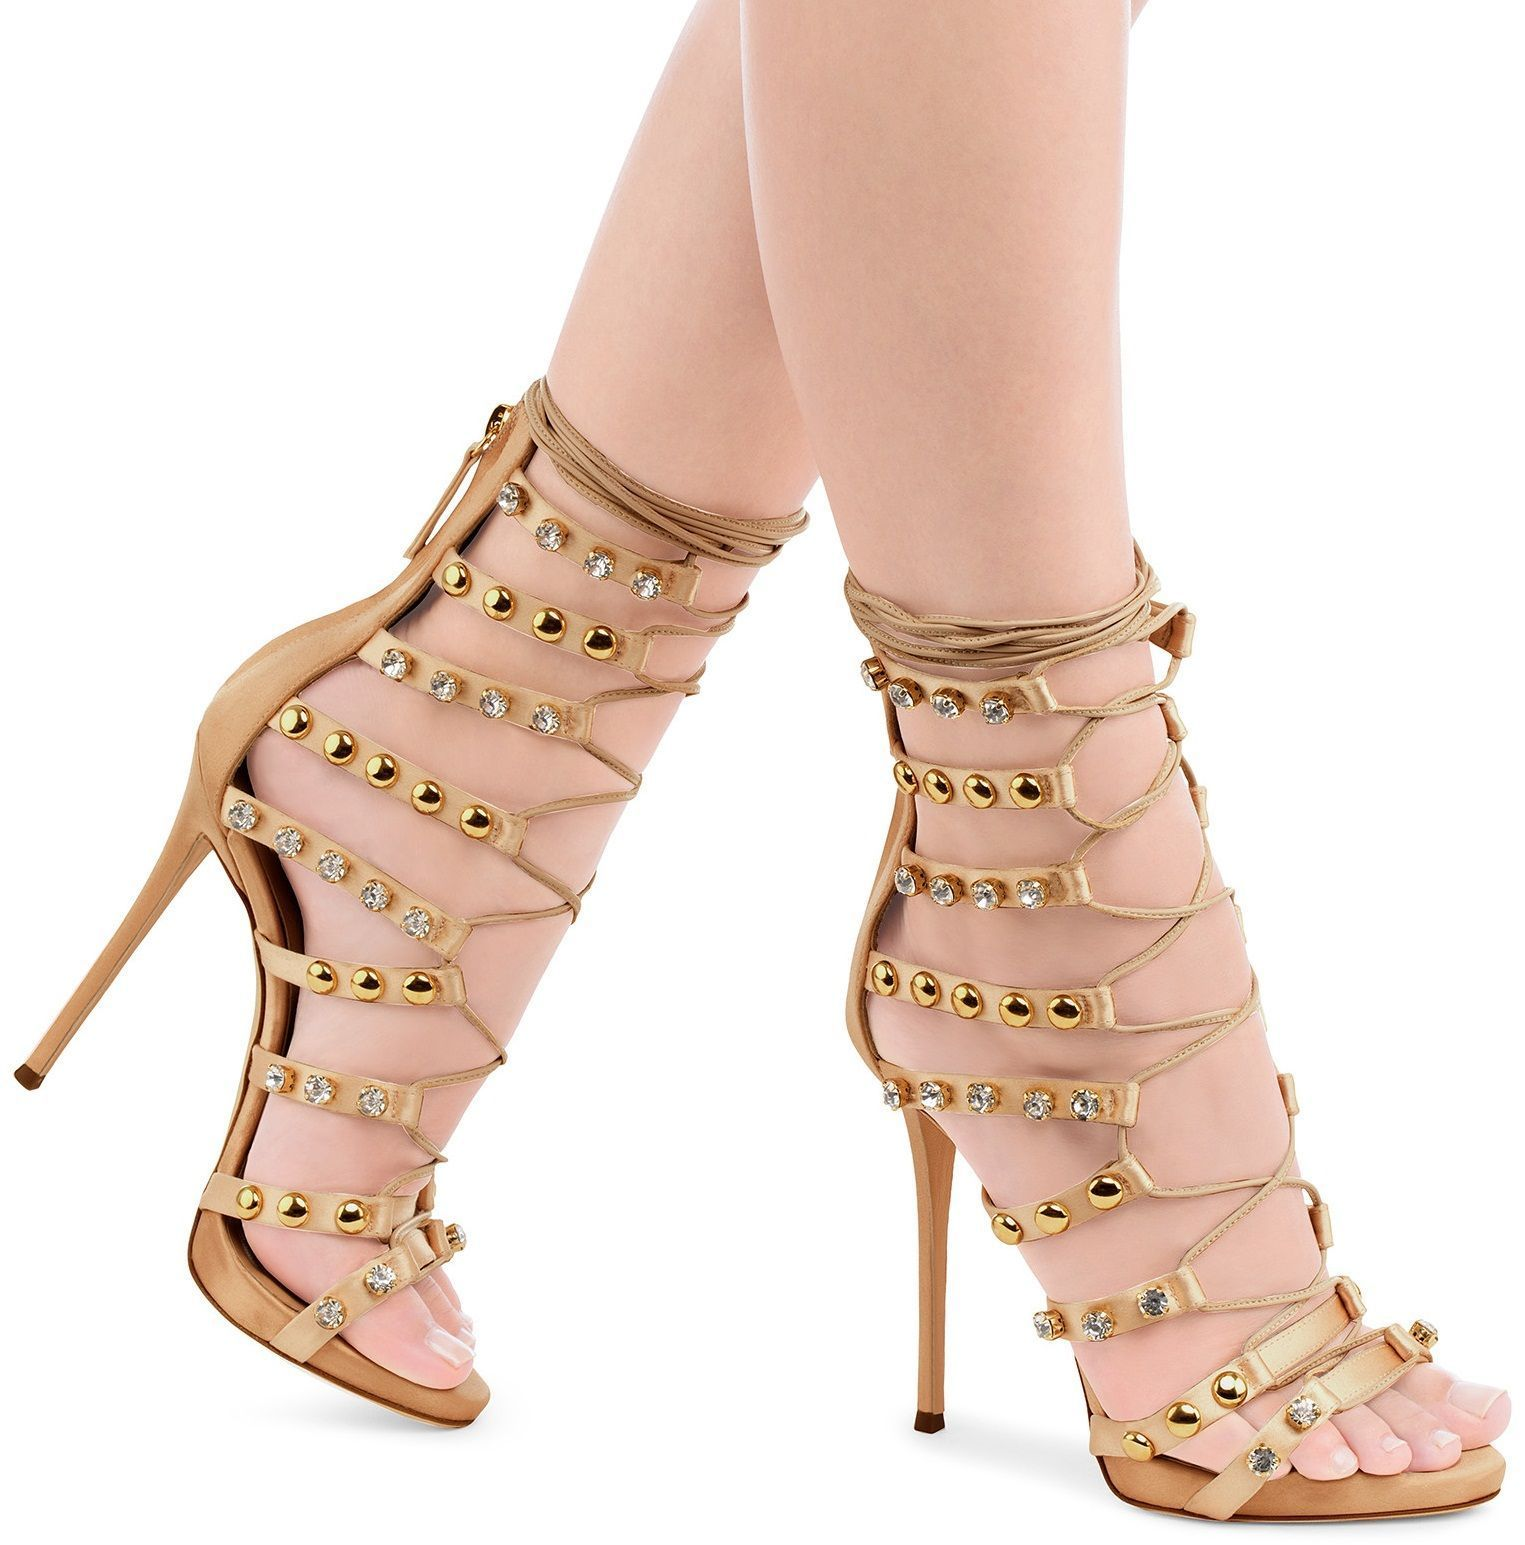 75804544cd1 Giuseppe Zanotti Kara Pink Satin Sandal With Crystals And Studs ...